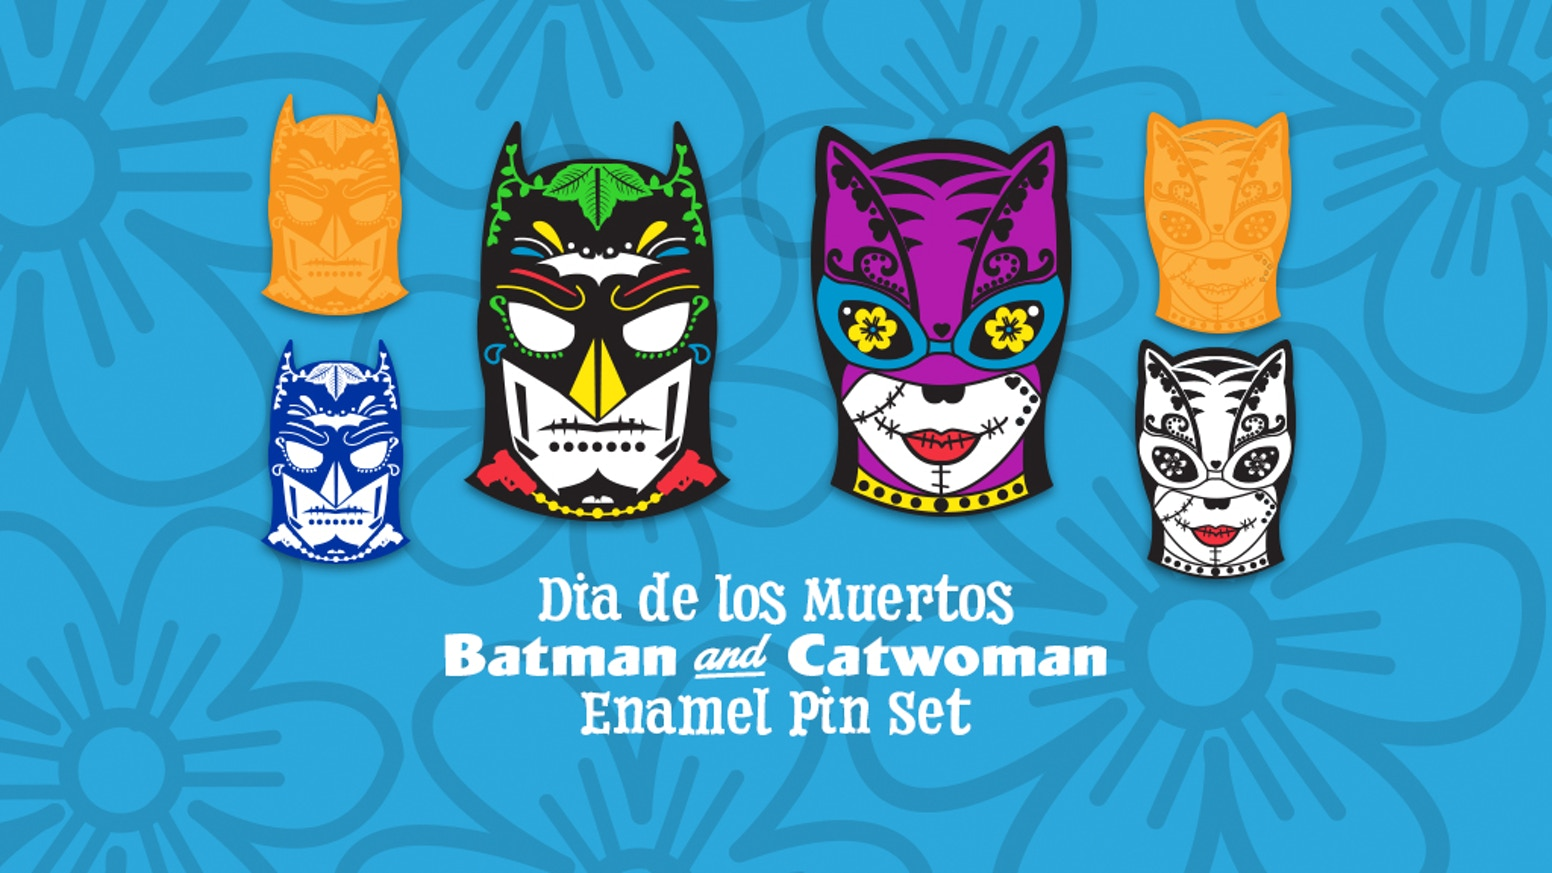 A set of 2 enamel pins inspired by Day of the Dead masks worn by Batman and Catwoman. Each set has variants, neon and glow features.